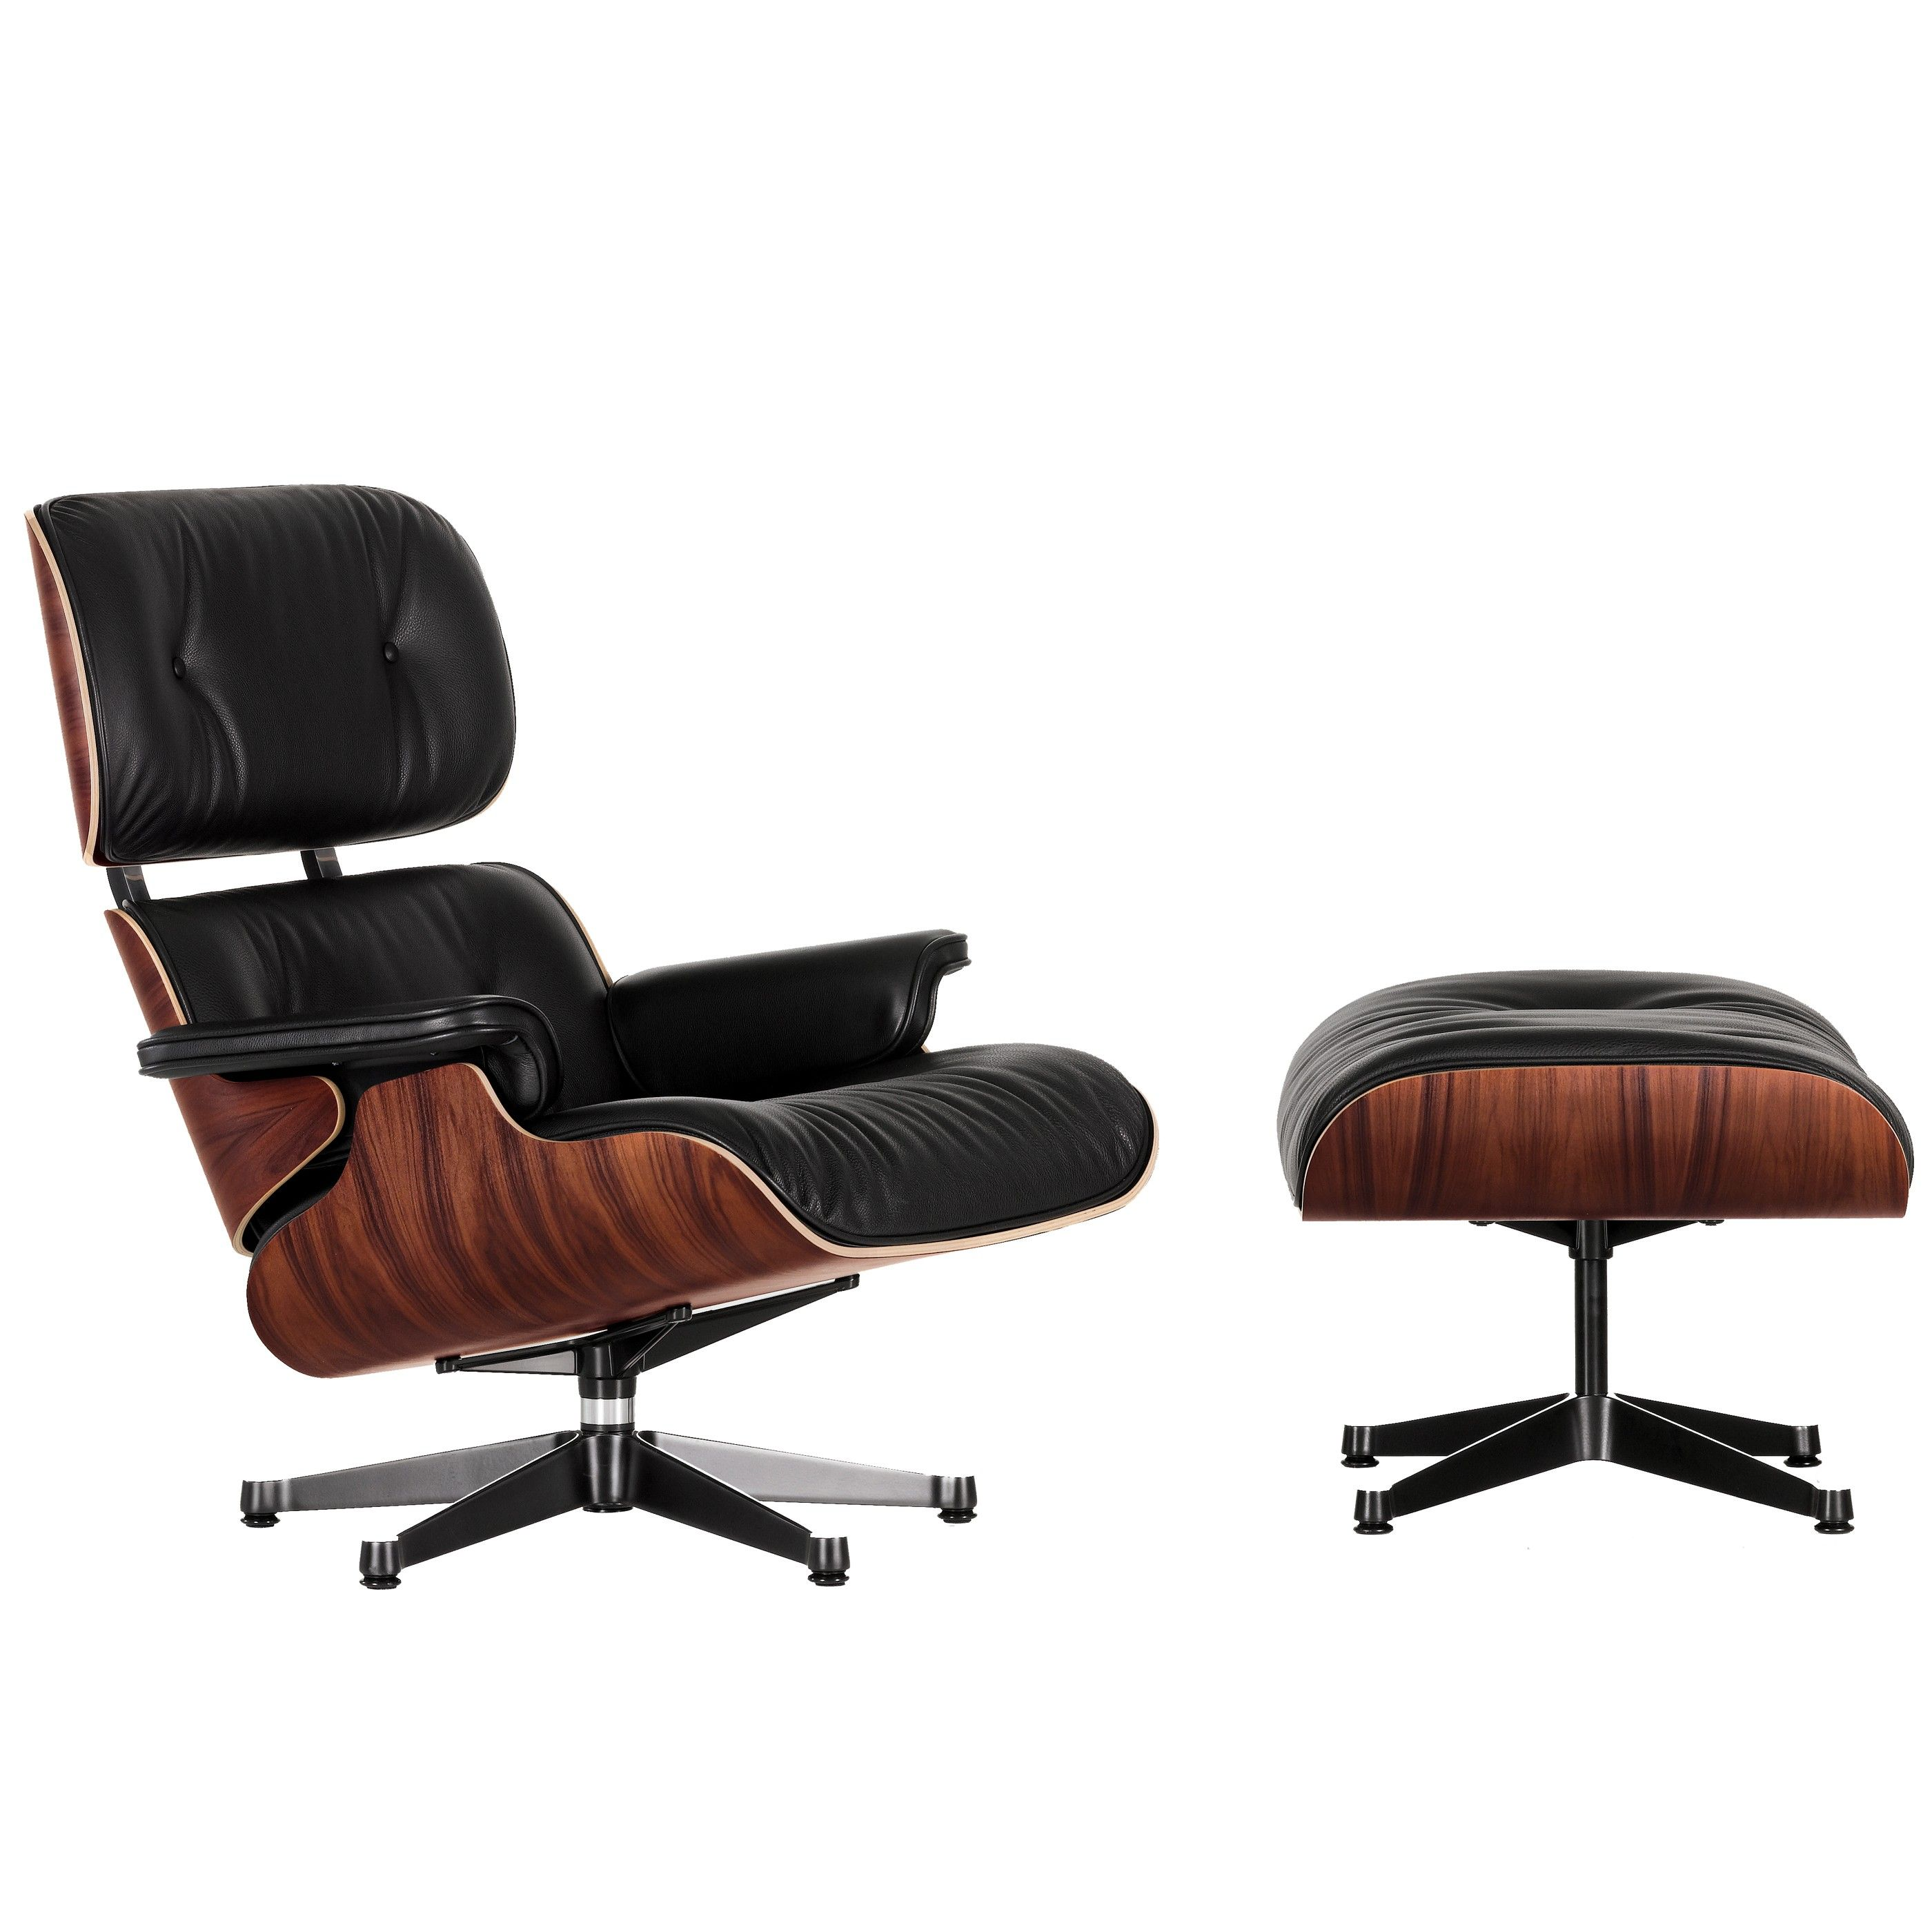 Vitra eames lounge chair met ottoman fauteuil nieuwe for Replica mobili design